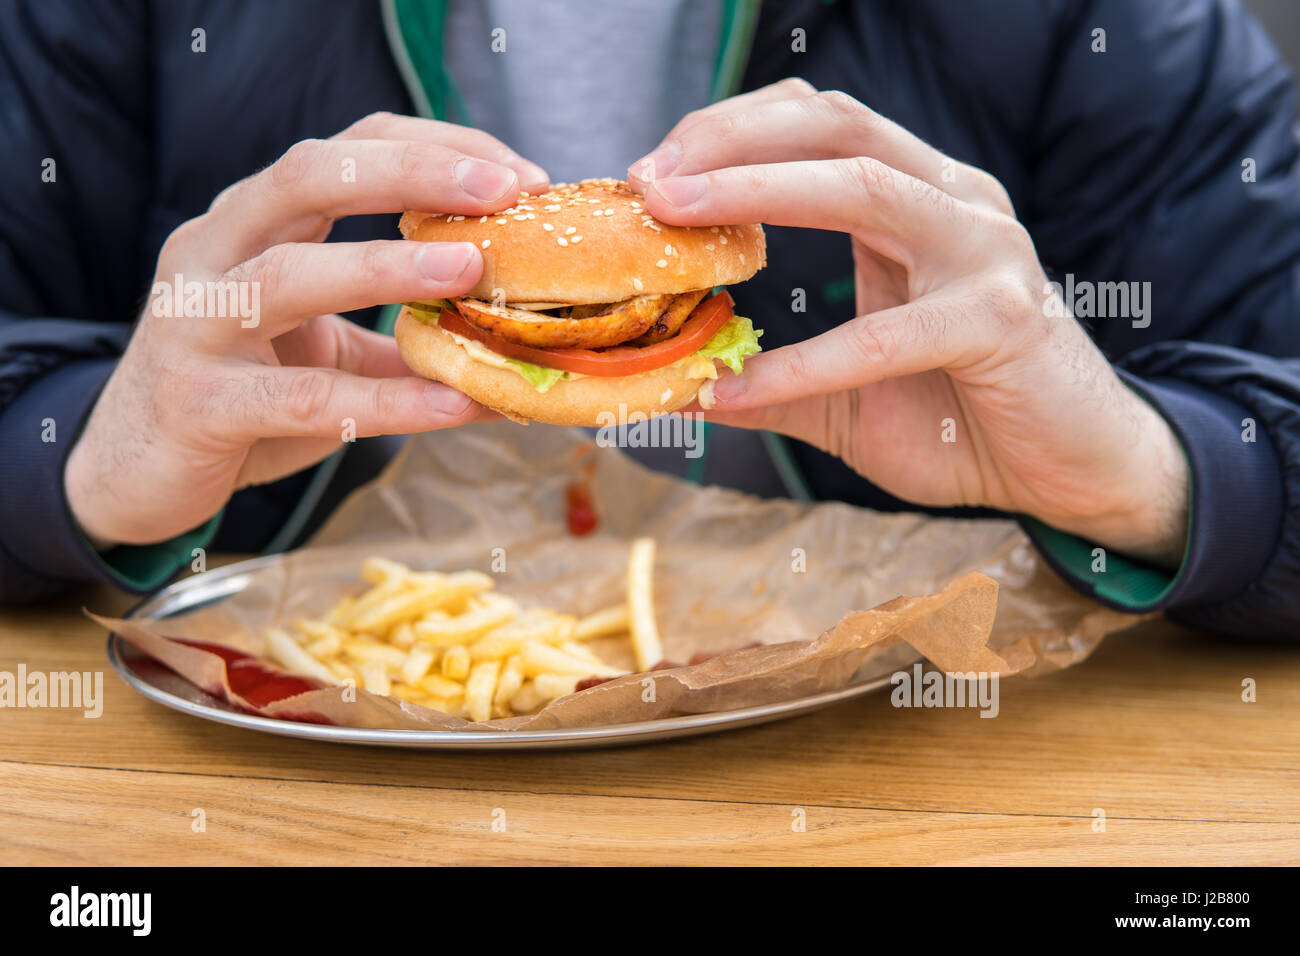 close up view of man's hands with american burger. - Stock Image